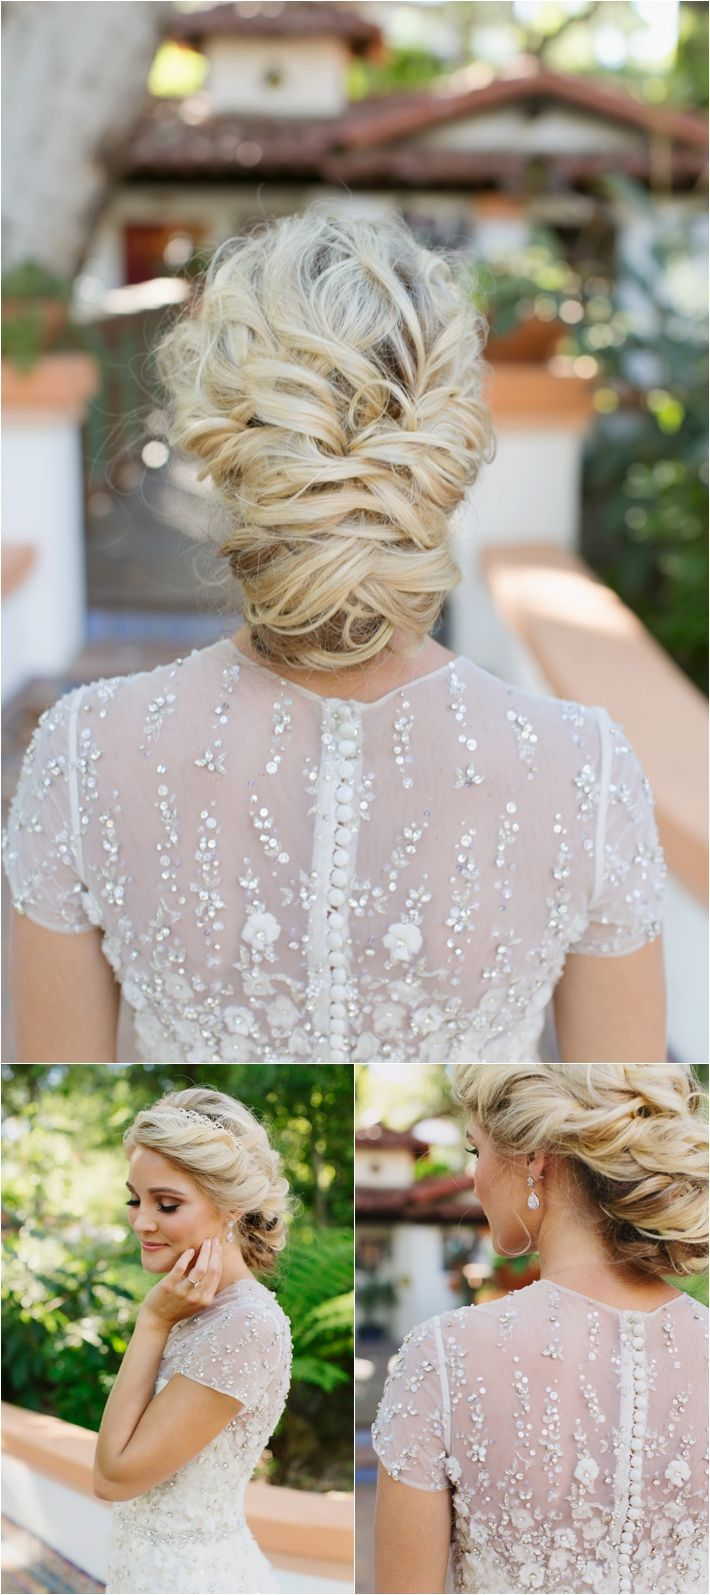 474 best Hair images on Pinterest | Hair colors, Hair ideas and ...